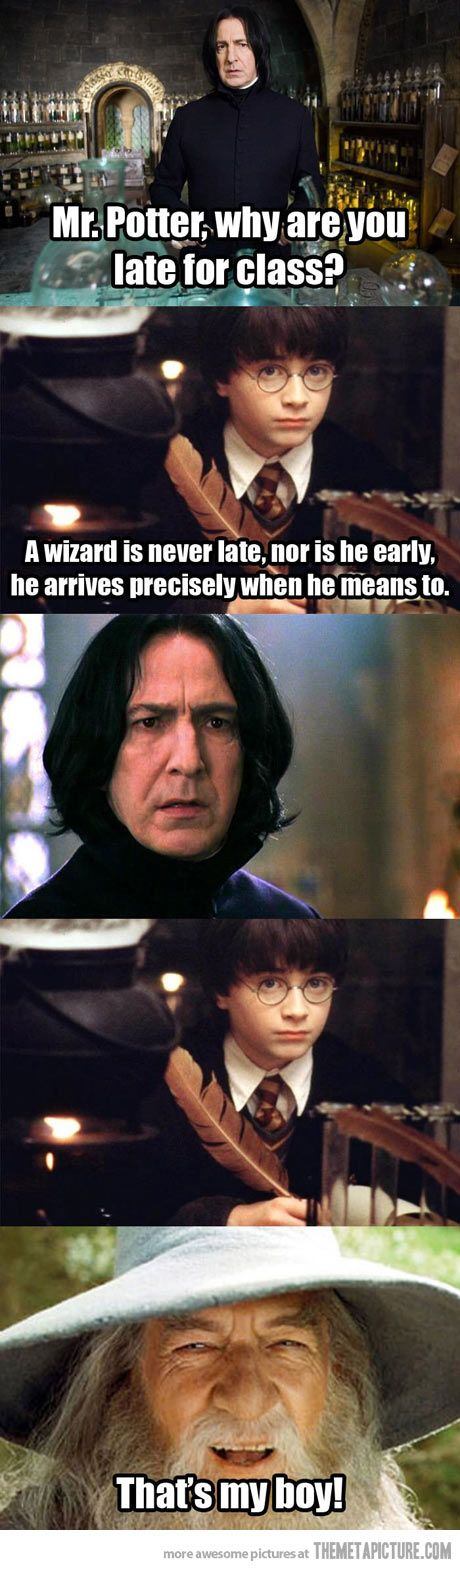 Wise words, Mr. Potter…